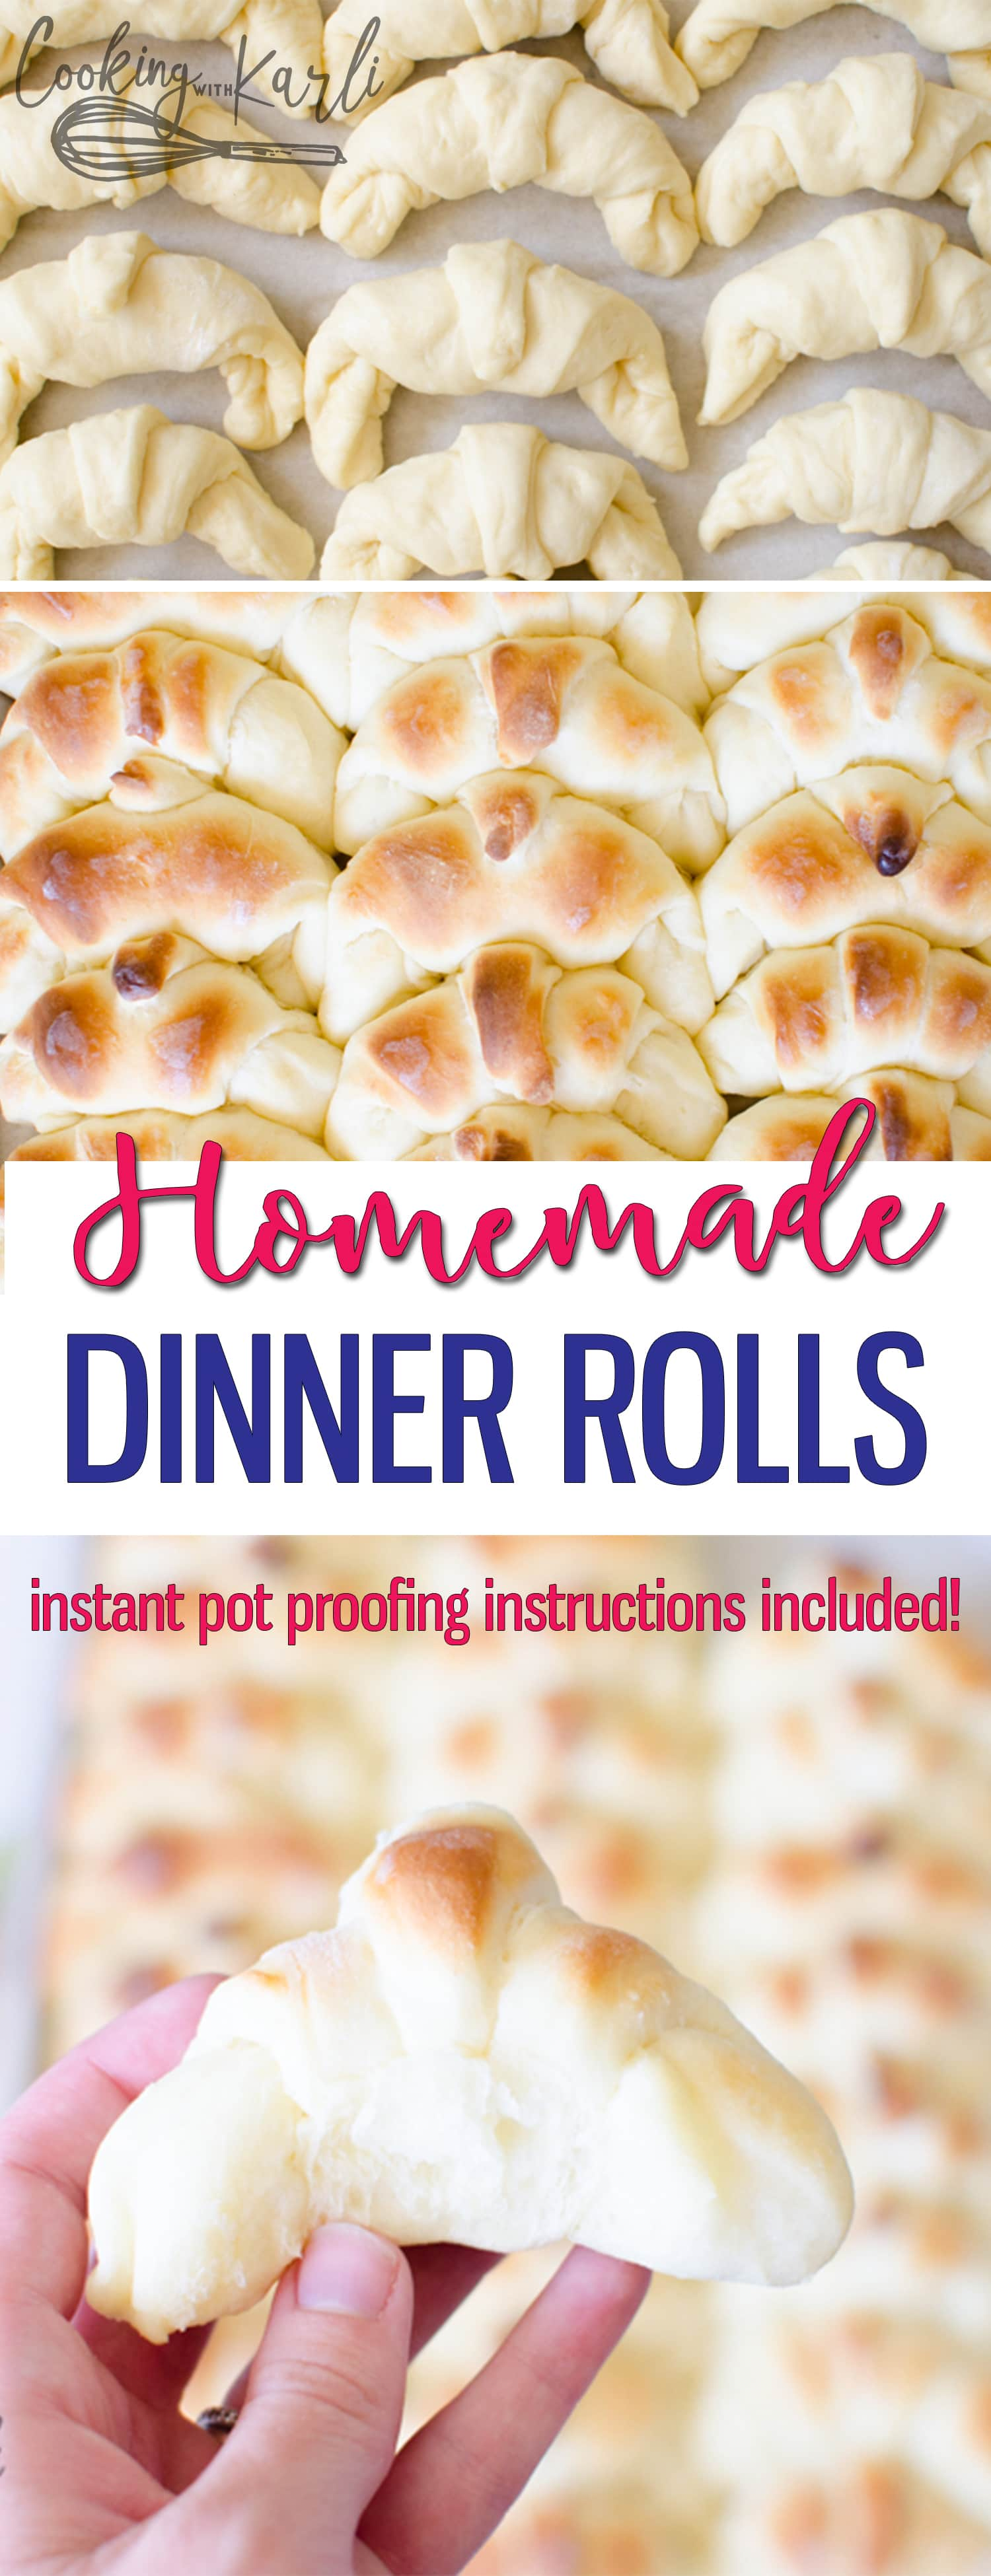 Homemade Dinner Rolls are soft, pillowy and yeasty! These Dinner Rolls are delicate enough to eat with jam and hearty enough to mop up gravy off of the dinner plate. Utilize the Instant Pot and make these rolls quickly and easily. This will be your families new favorite Dinner Roll recipe! |Cooking with Karli| #rolls #dinnerroll #dinner #easy #instantpot #proofing #sides #bread #crescent #homemade